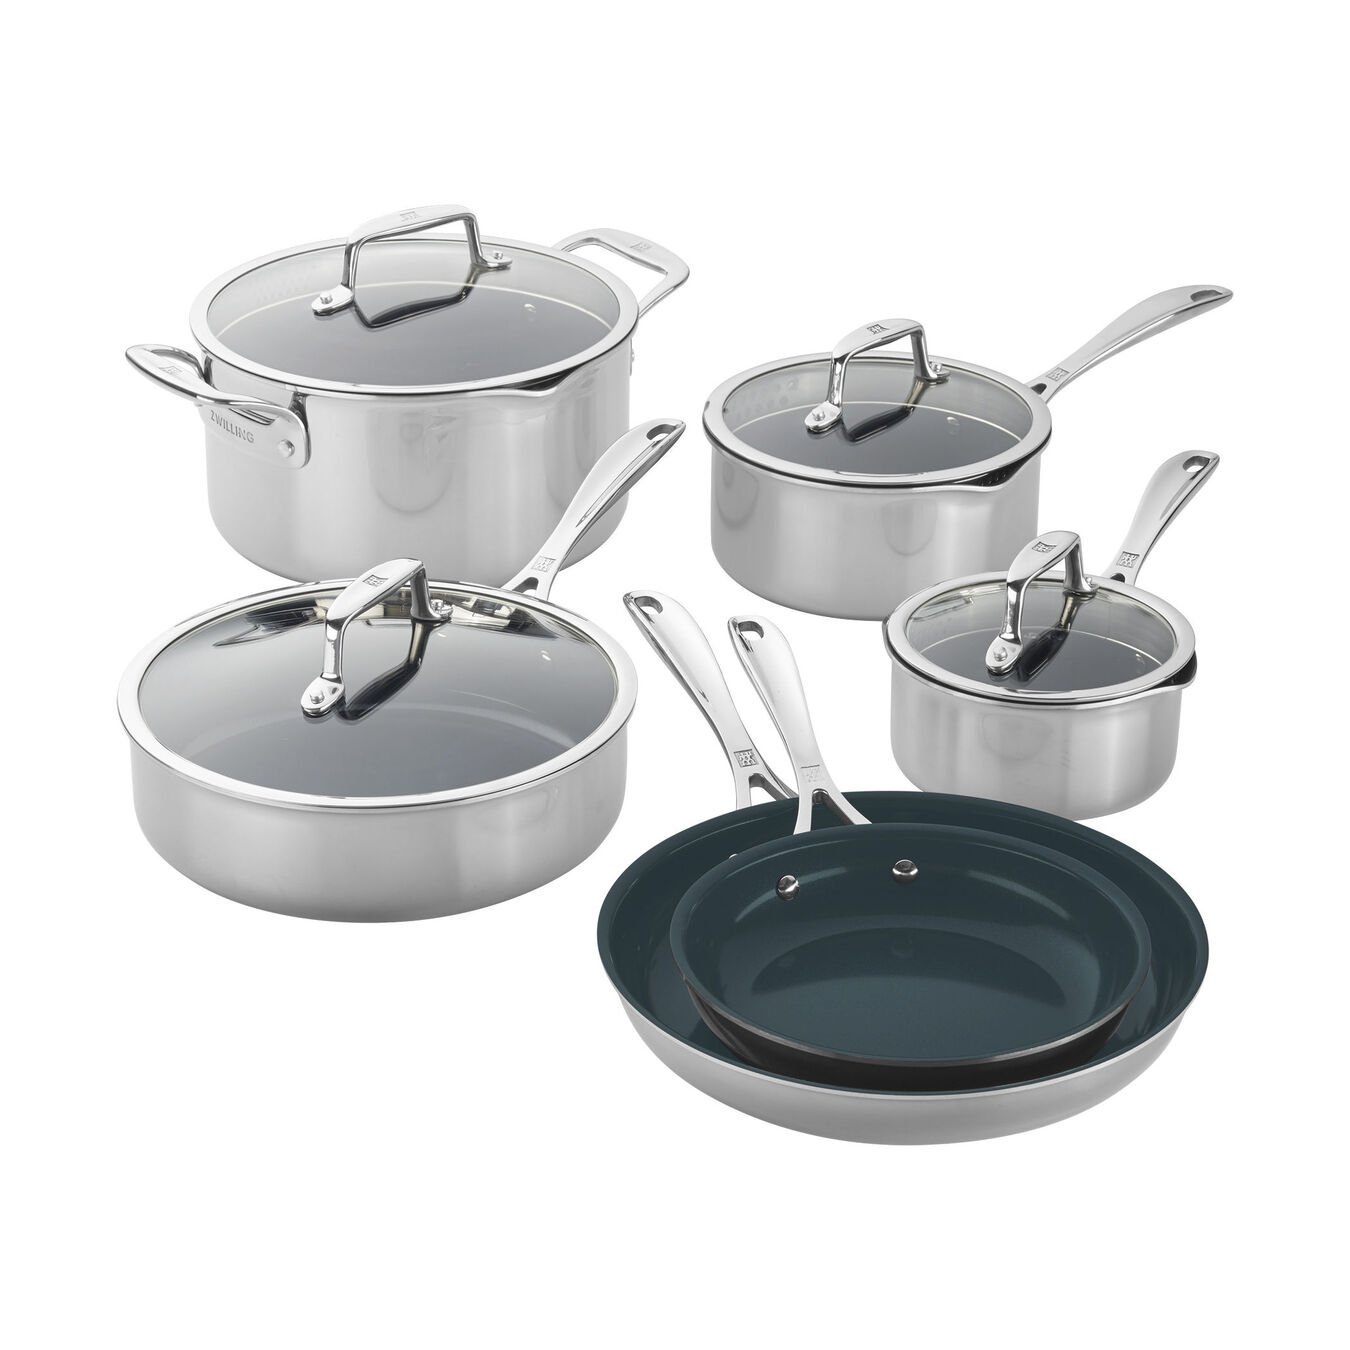 10pc Stainless Steel Ceramic Nonstick Cookware Set,,large 1